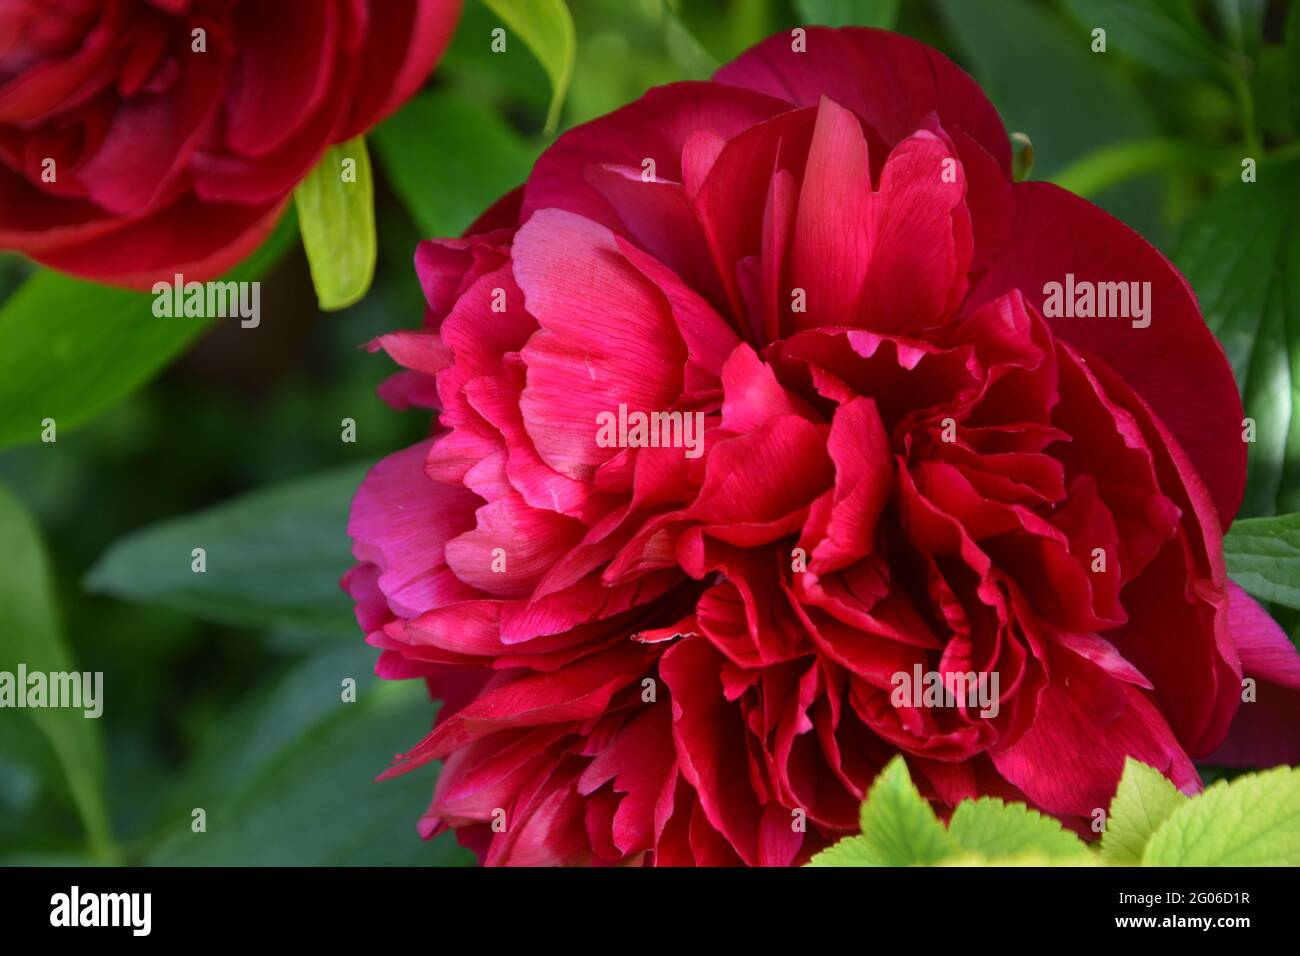 Paeonia Officinalis Rubra Plena, Cambridge  UK, Purely Beautiful and Peaceful Floral Space Stock Photo